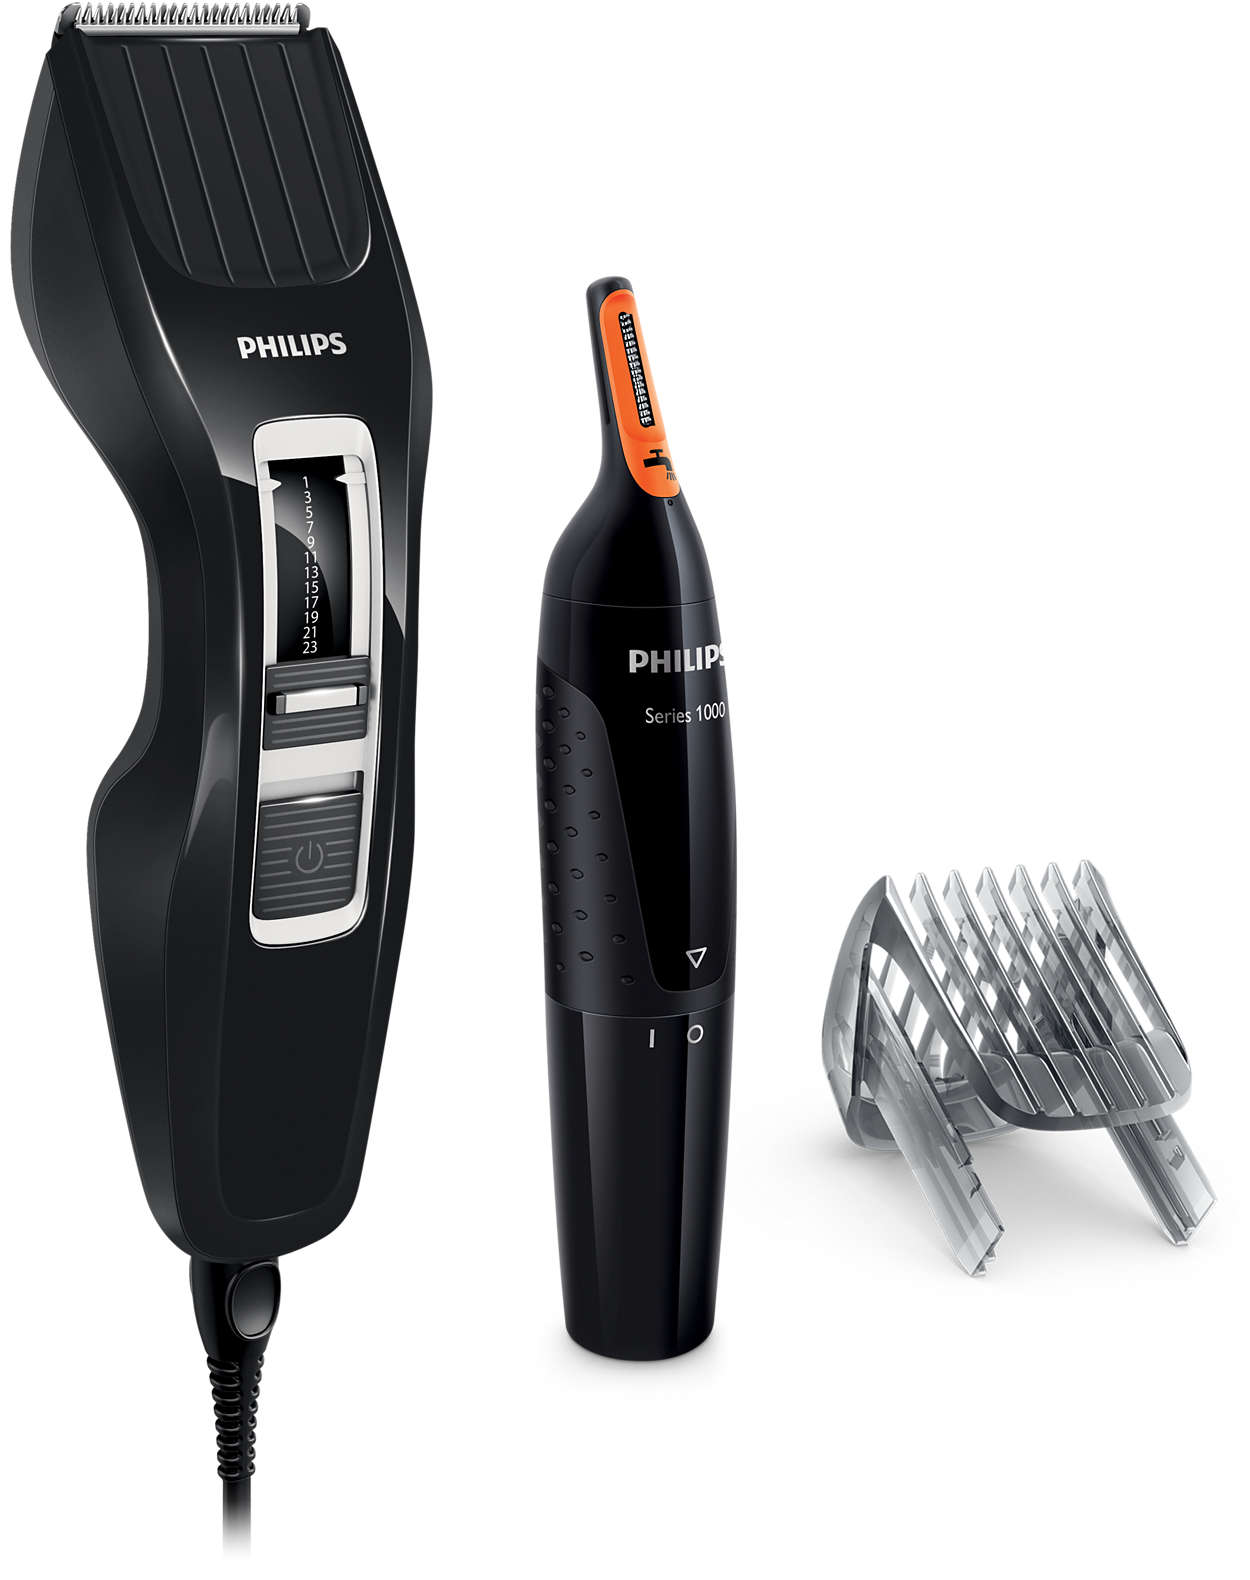 HAIRCLIPPER i 3000-serien – klipper dubbelt så fort*